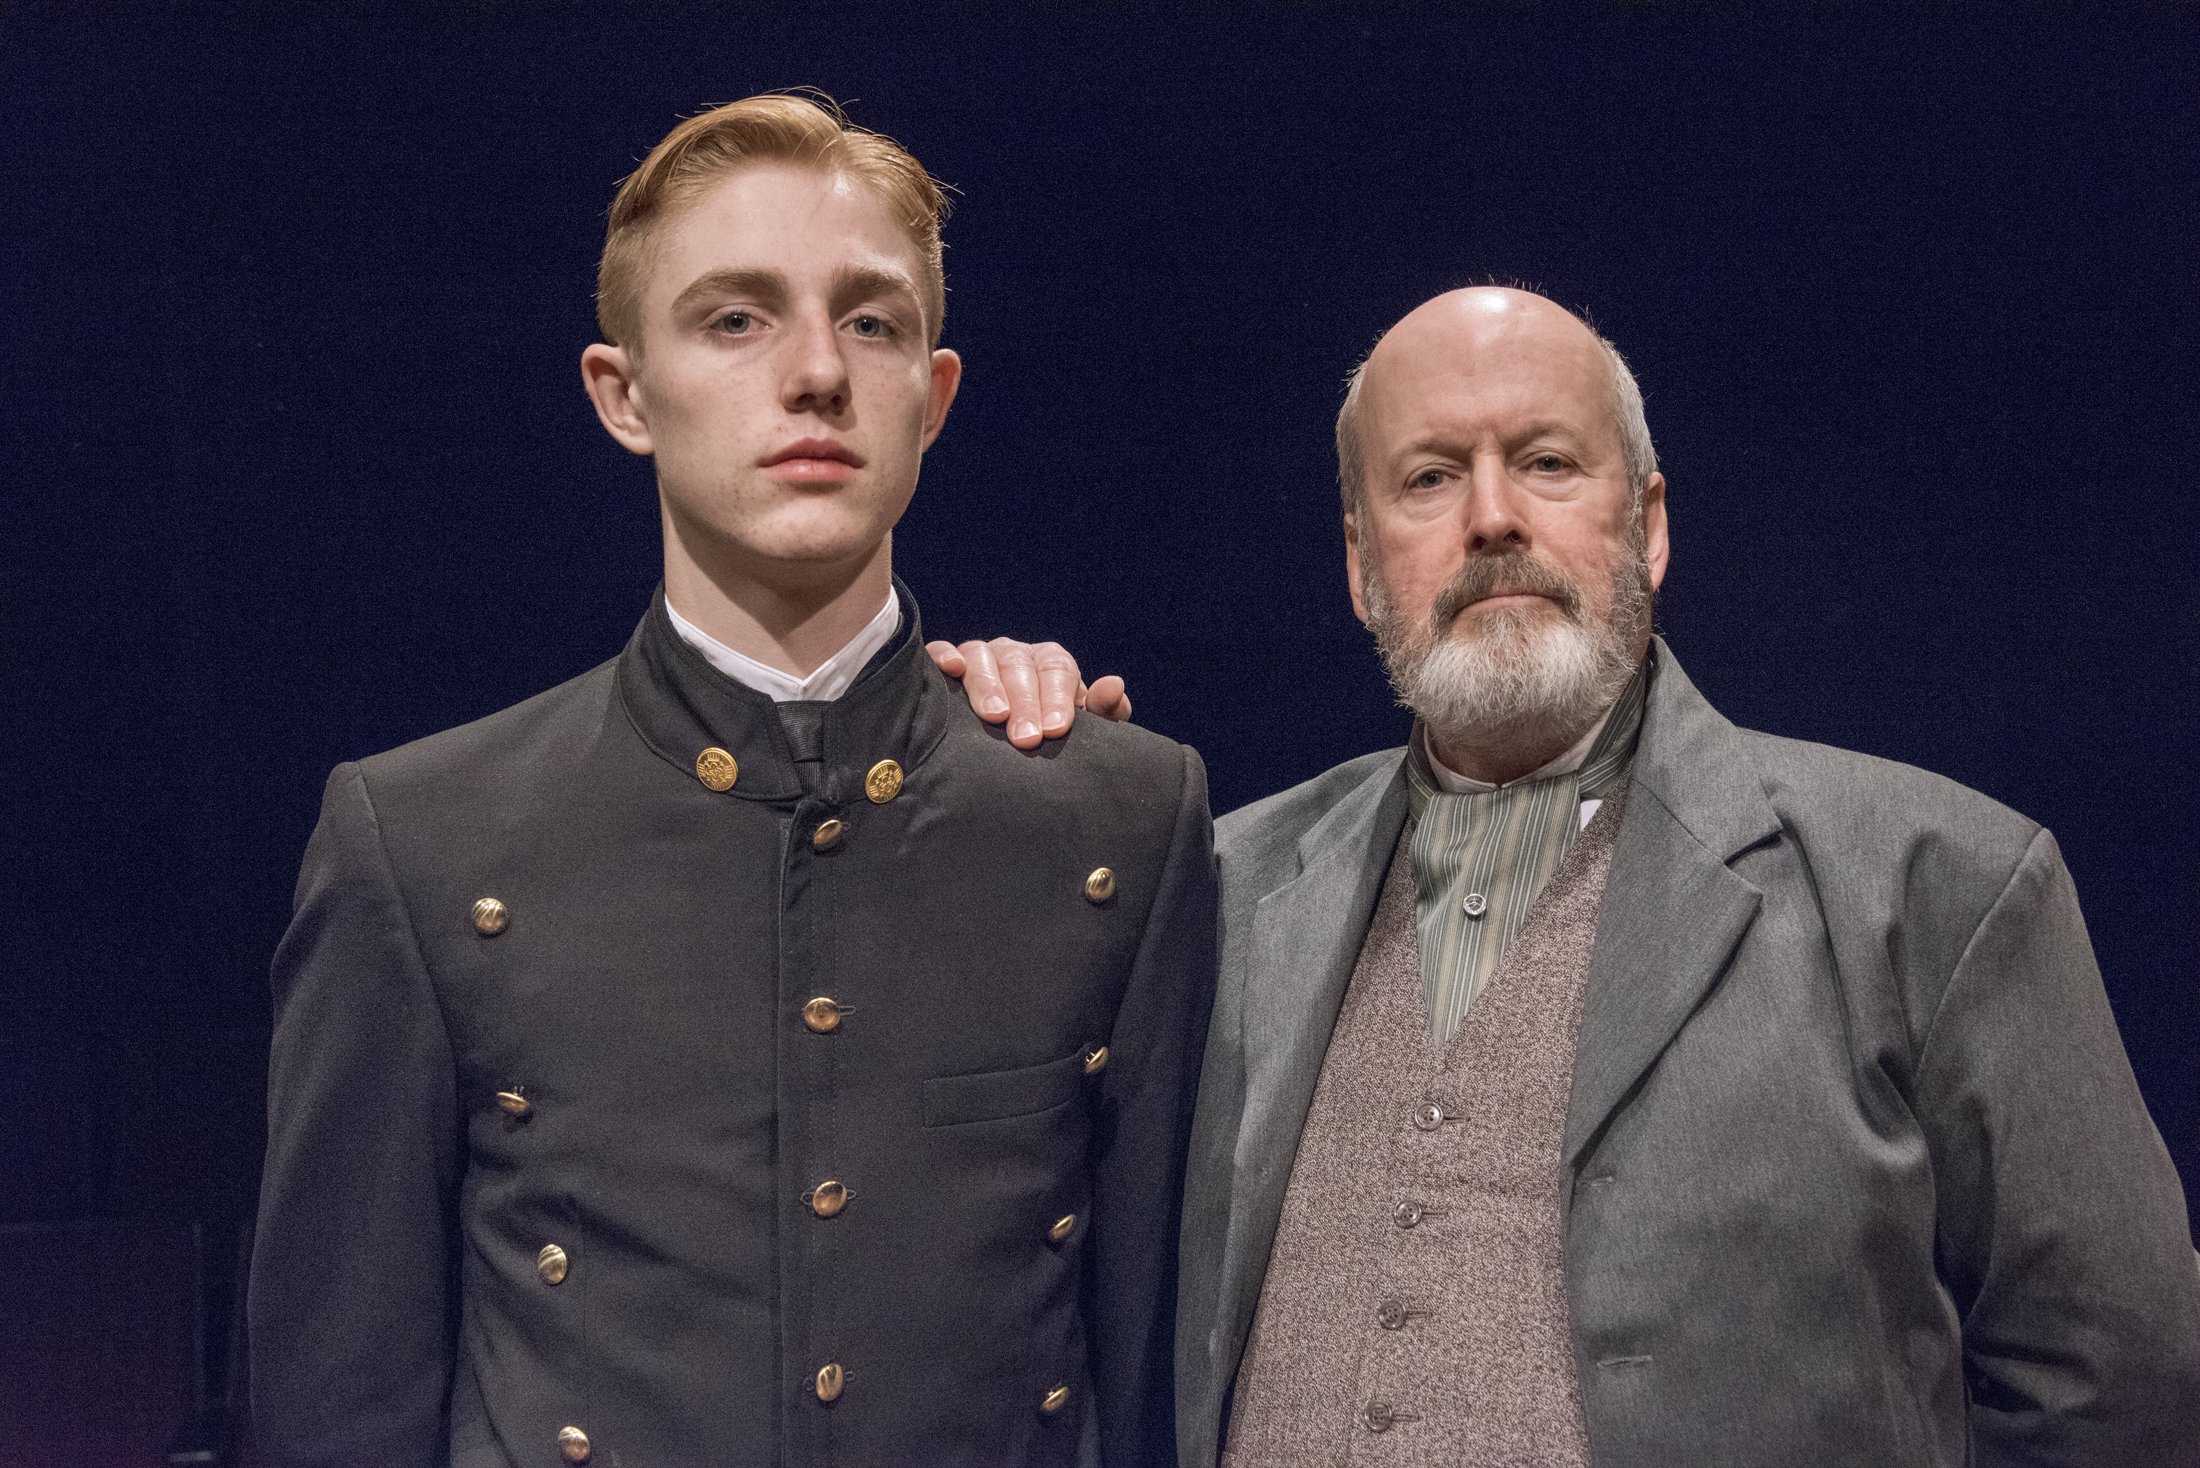 BWW Review: THE WINSLOW BOY at Irish Classical Theatre